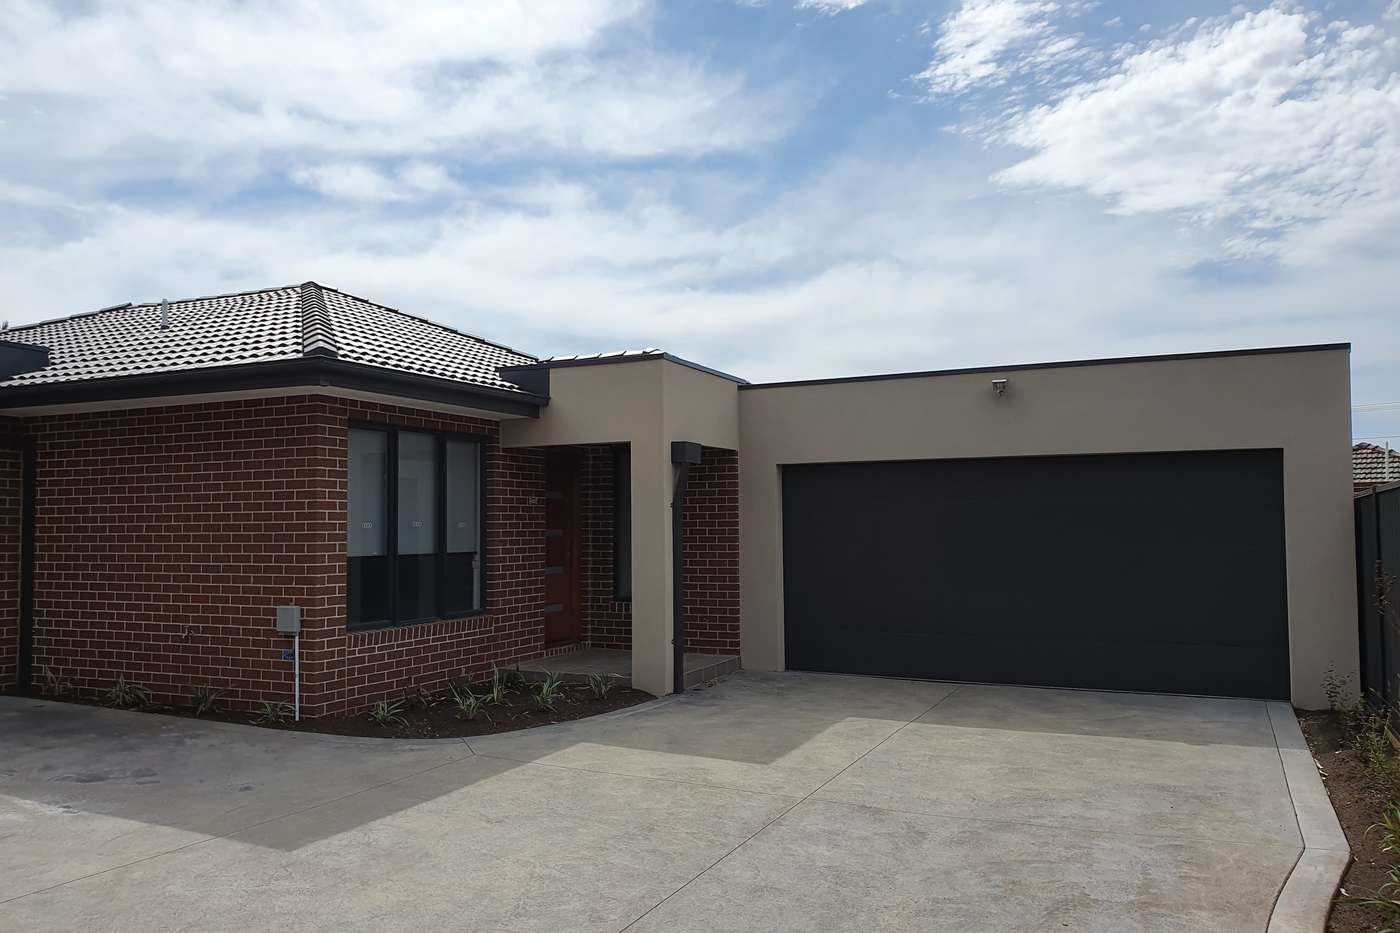 Main view of Homely house listing, 2/6 Dempsey Court, Epping, VIC 3076